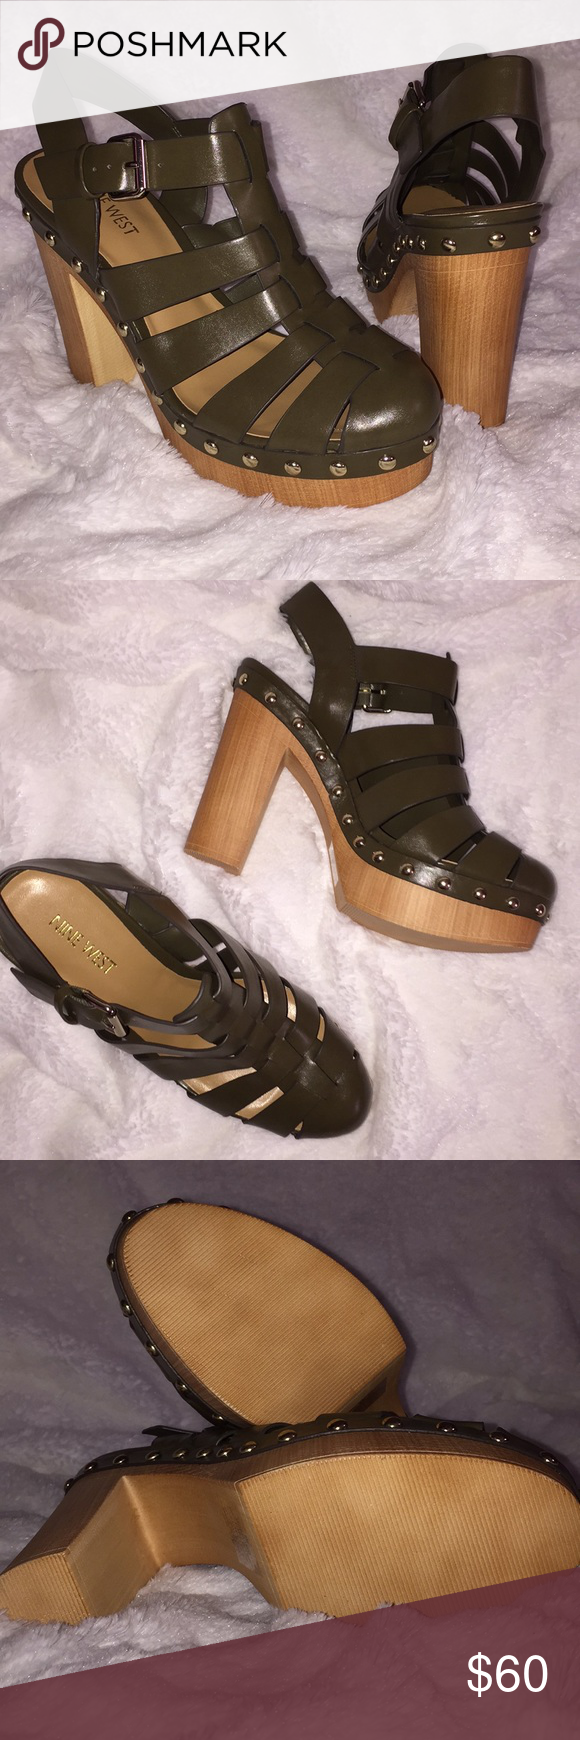 eb82d89c817 Nine West MODELME caged platform Sandals Brand new olive green with gold  details and buckle strap. It s 4 3 4 inch cubed heels with a 1 1 2 inch  platform ...